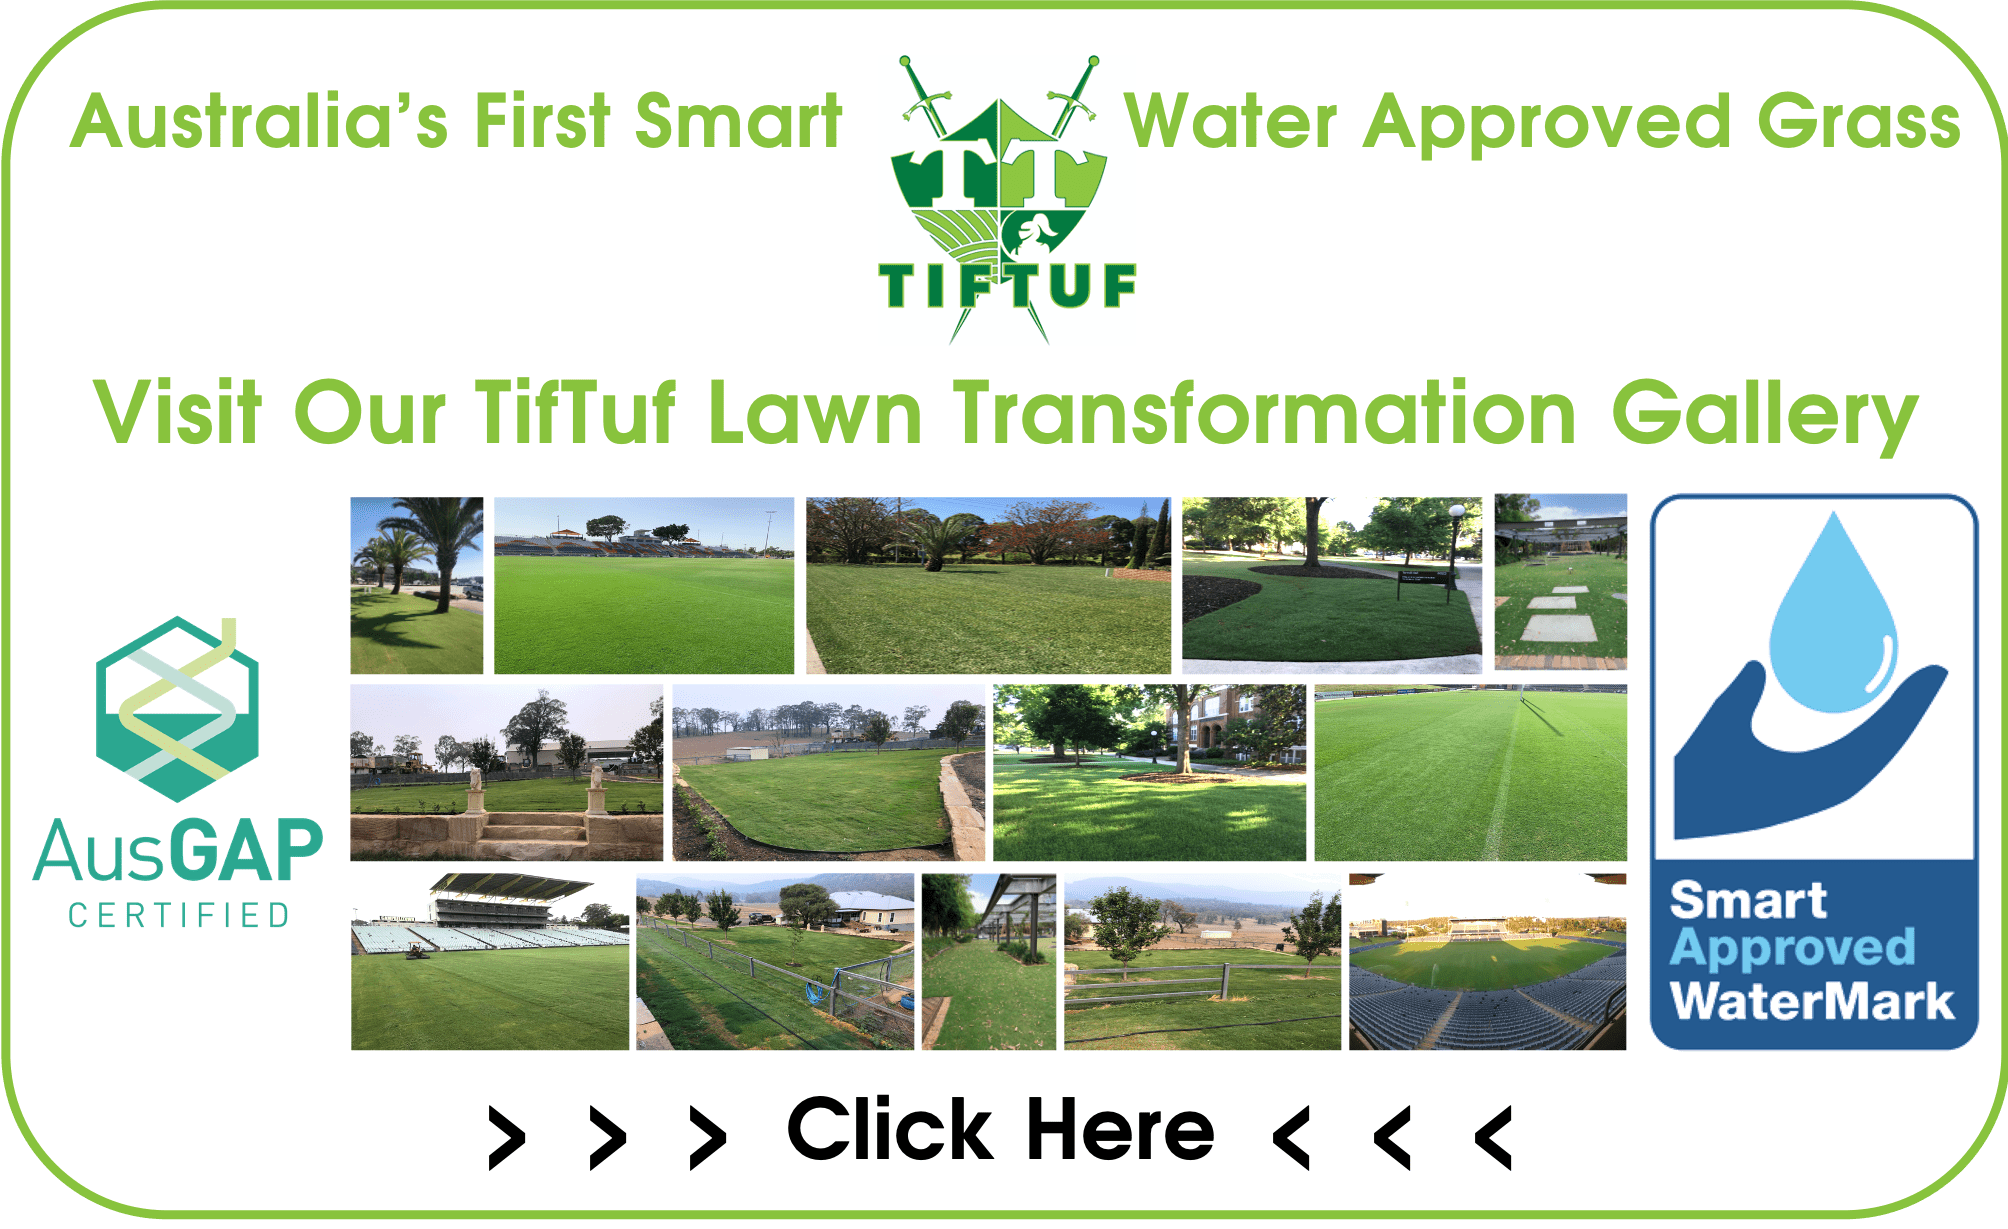 TifTuf Lawn Transformation Gallery | Commercial Lawns